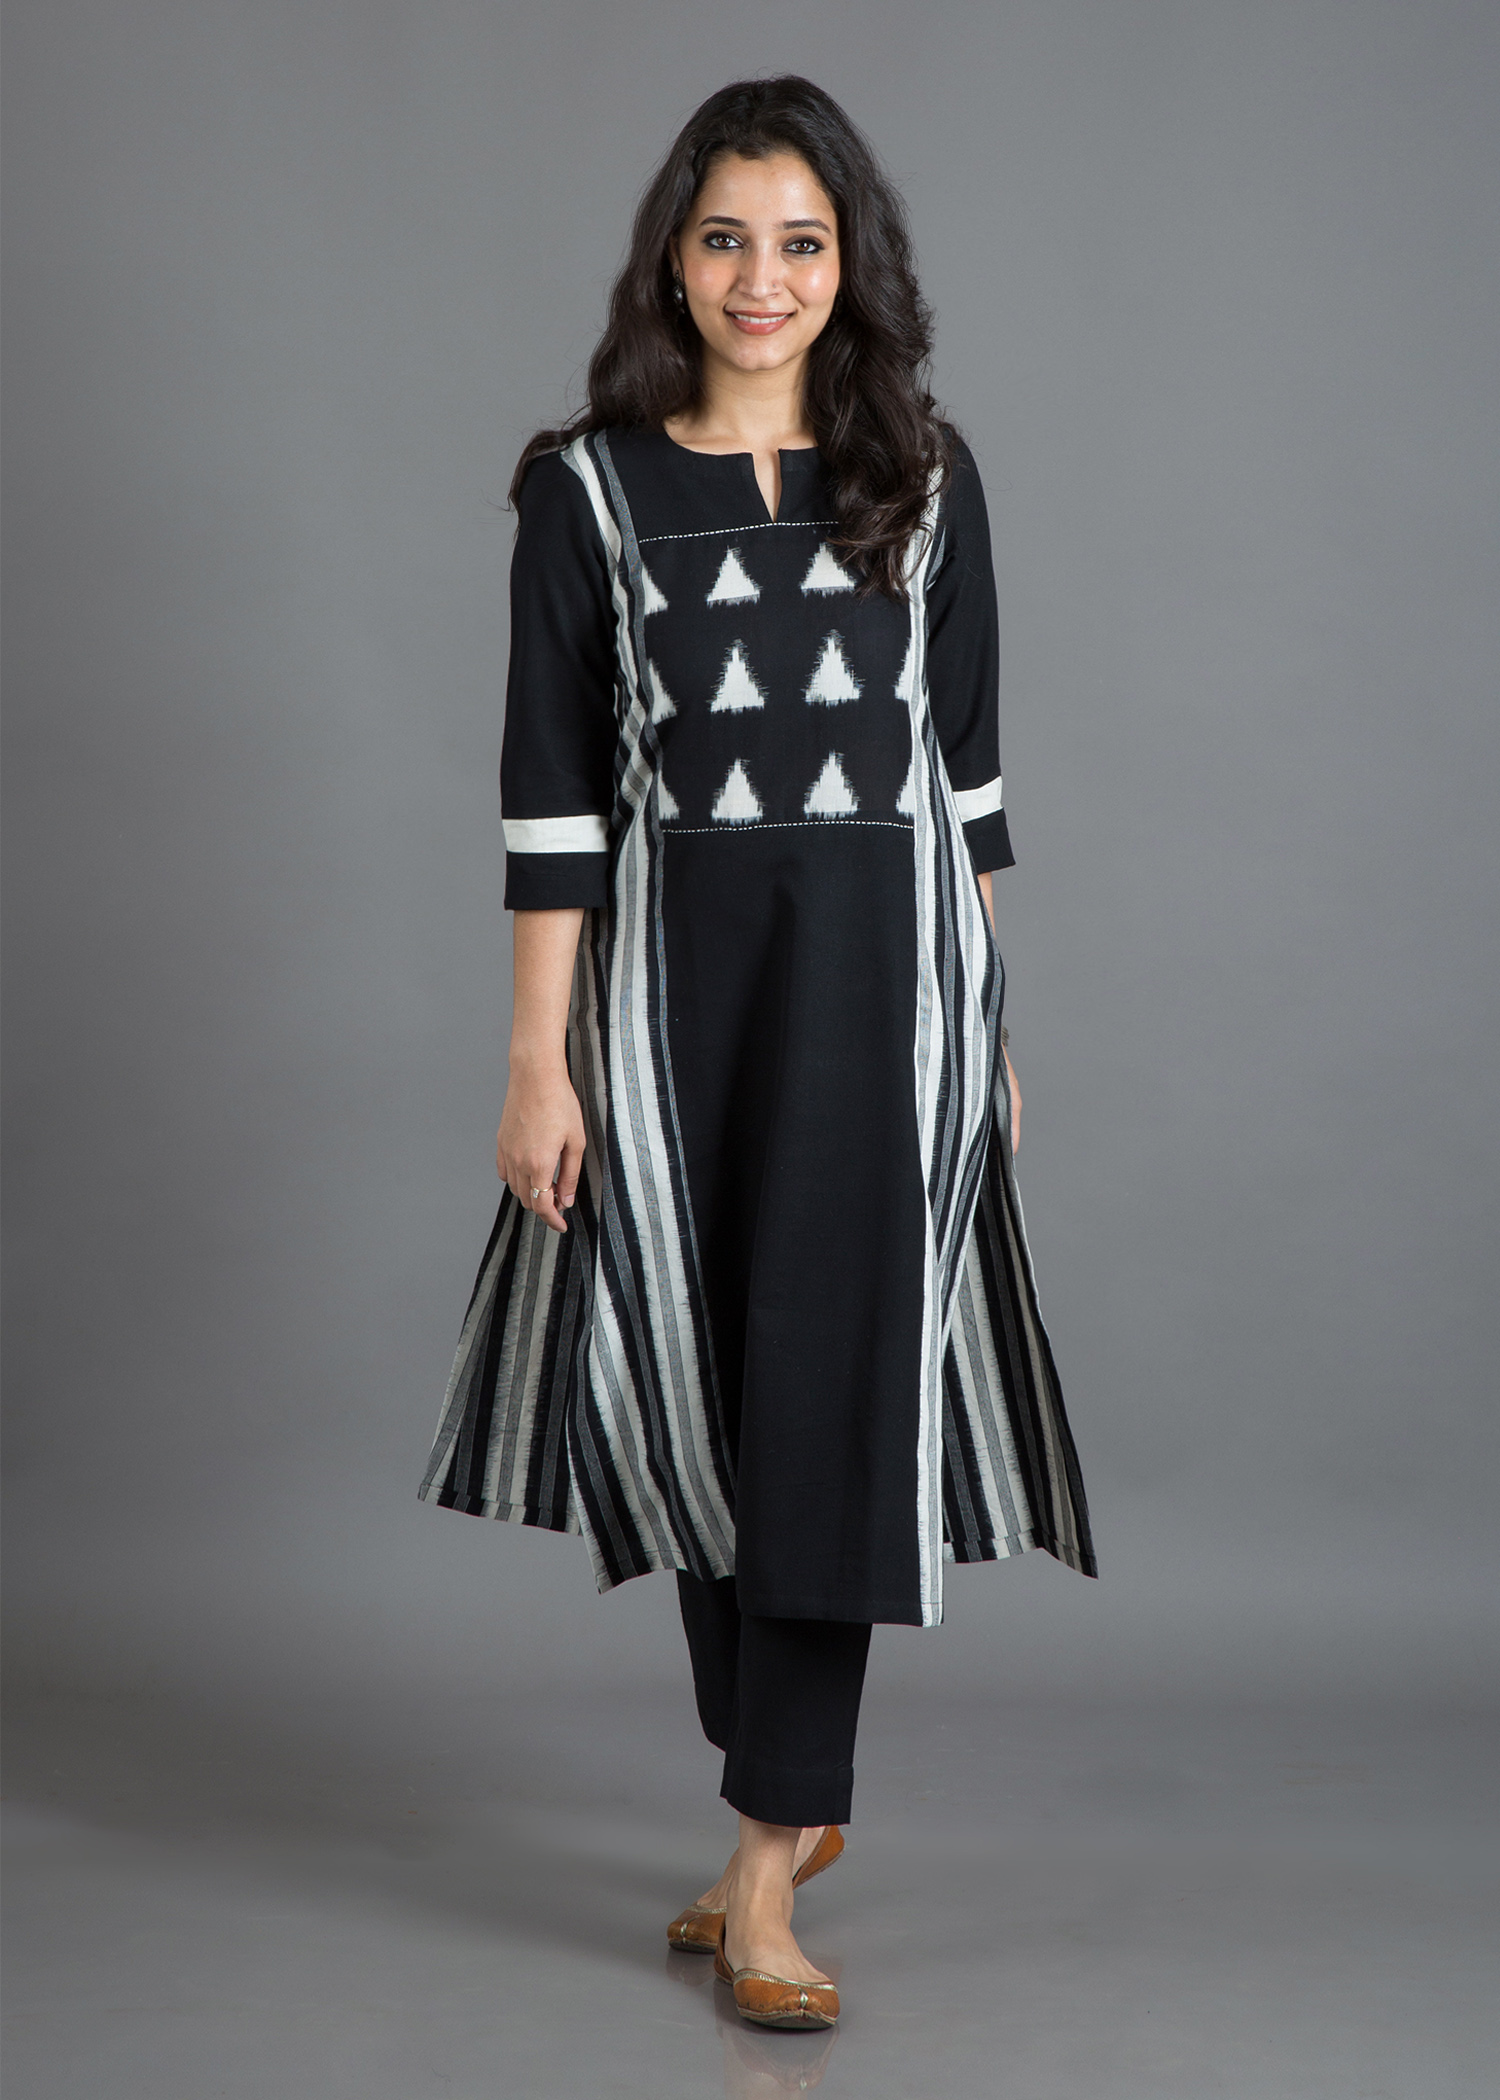 Ink Black & Off-White Handwoven Cotton Kurta with Ikat Yoke